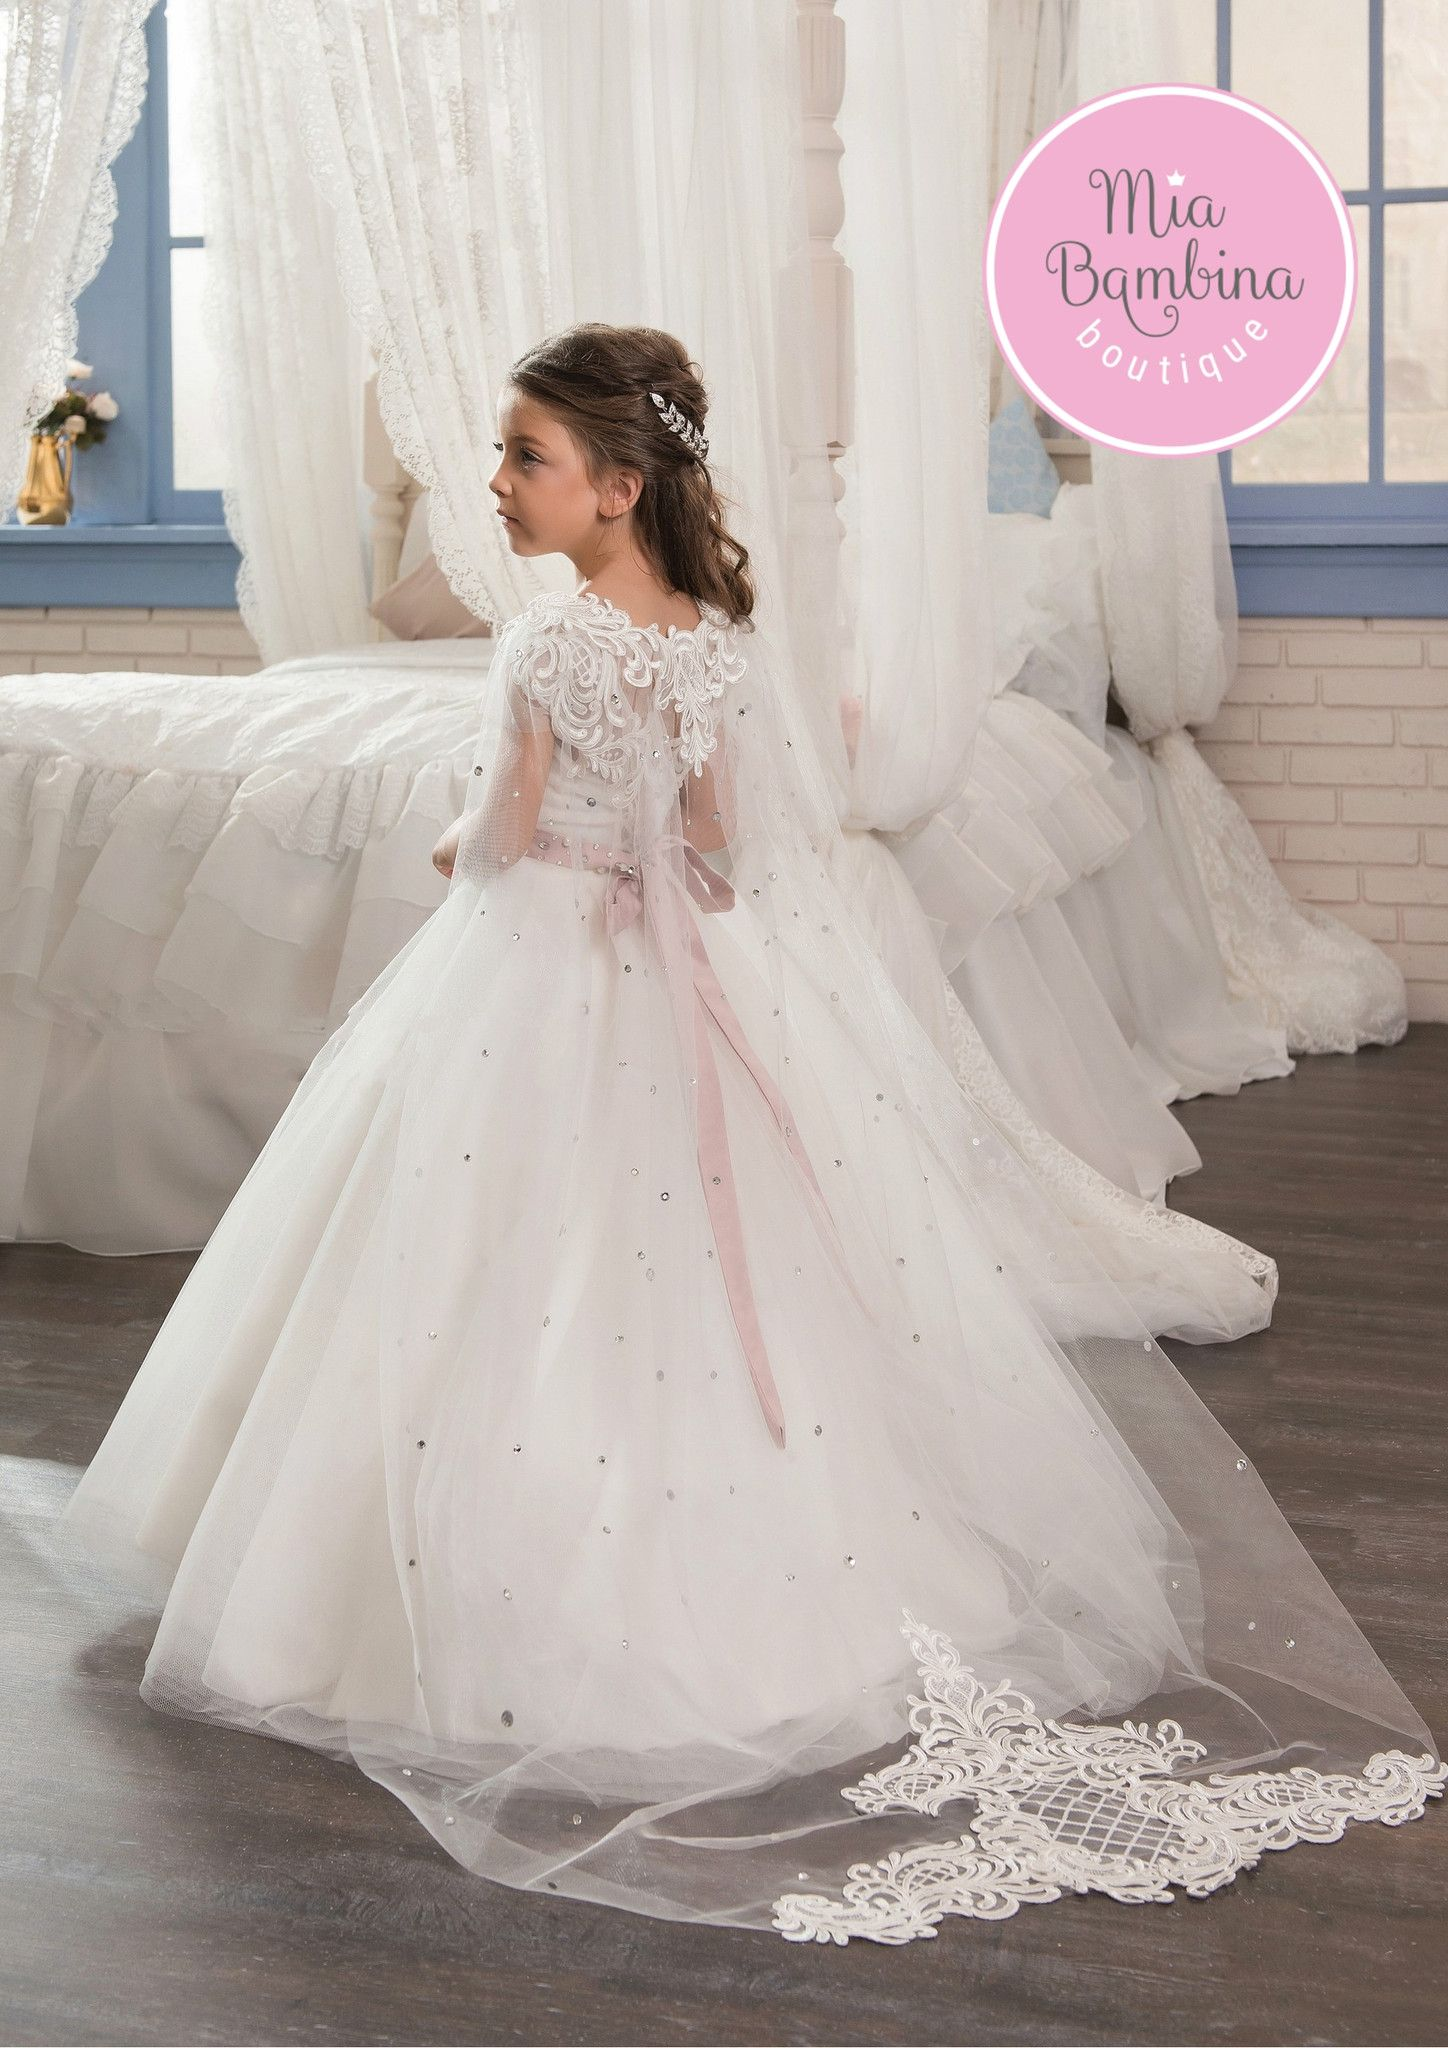 631197dcc30 The Colorado flower girl dress is a beautiful A-line dress with a  detachable cape. A fitted open back bodice with short sheer sleeves and a  long full tulle ...